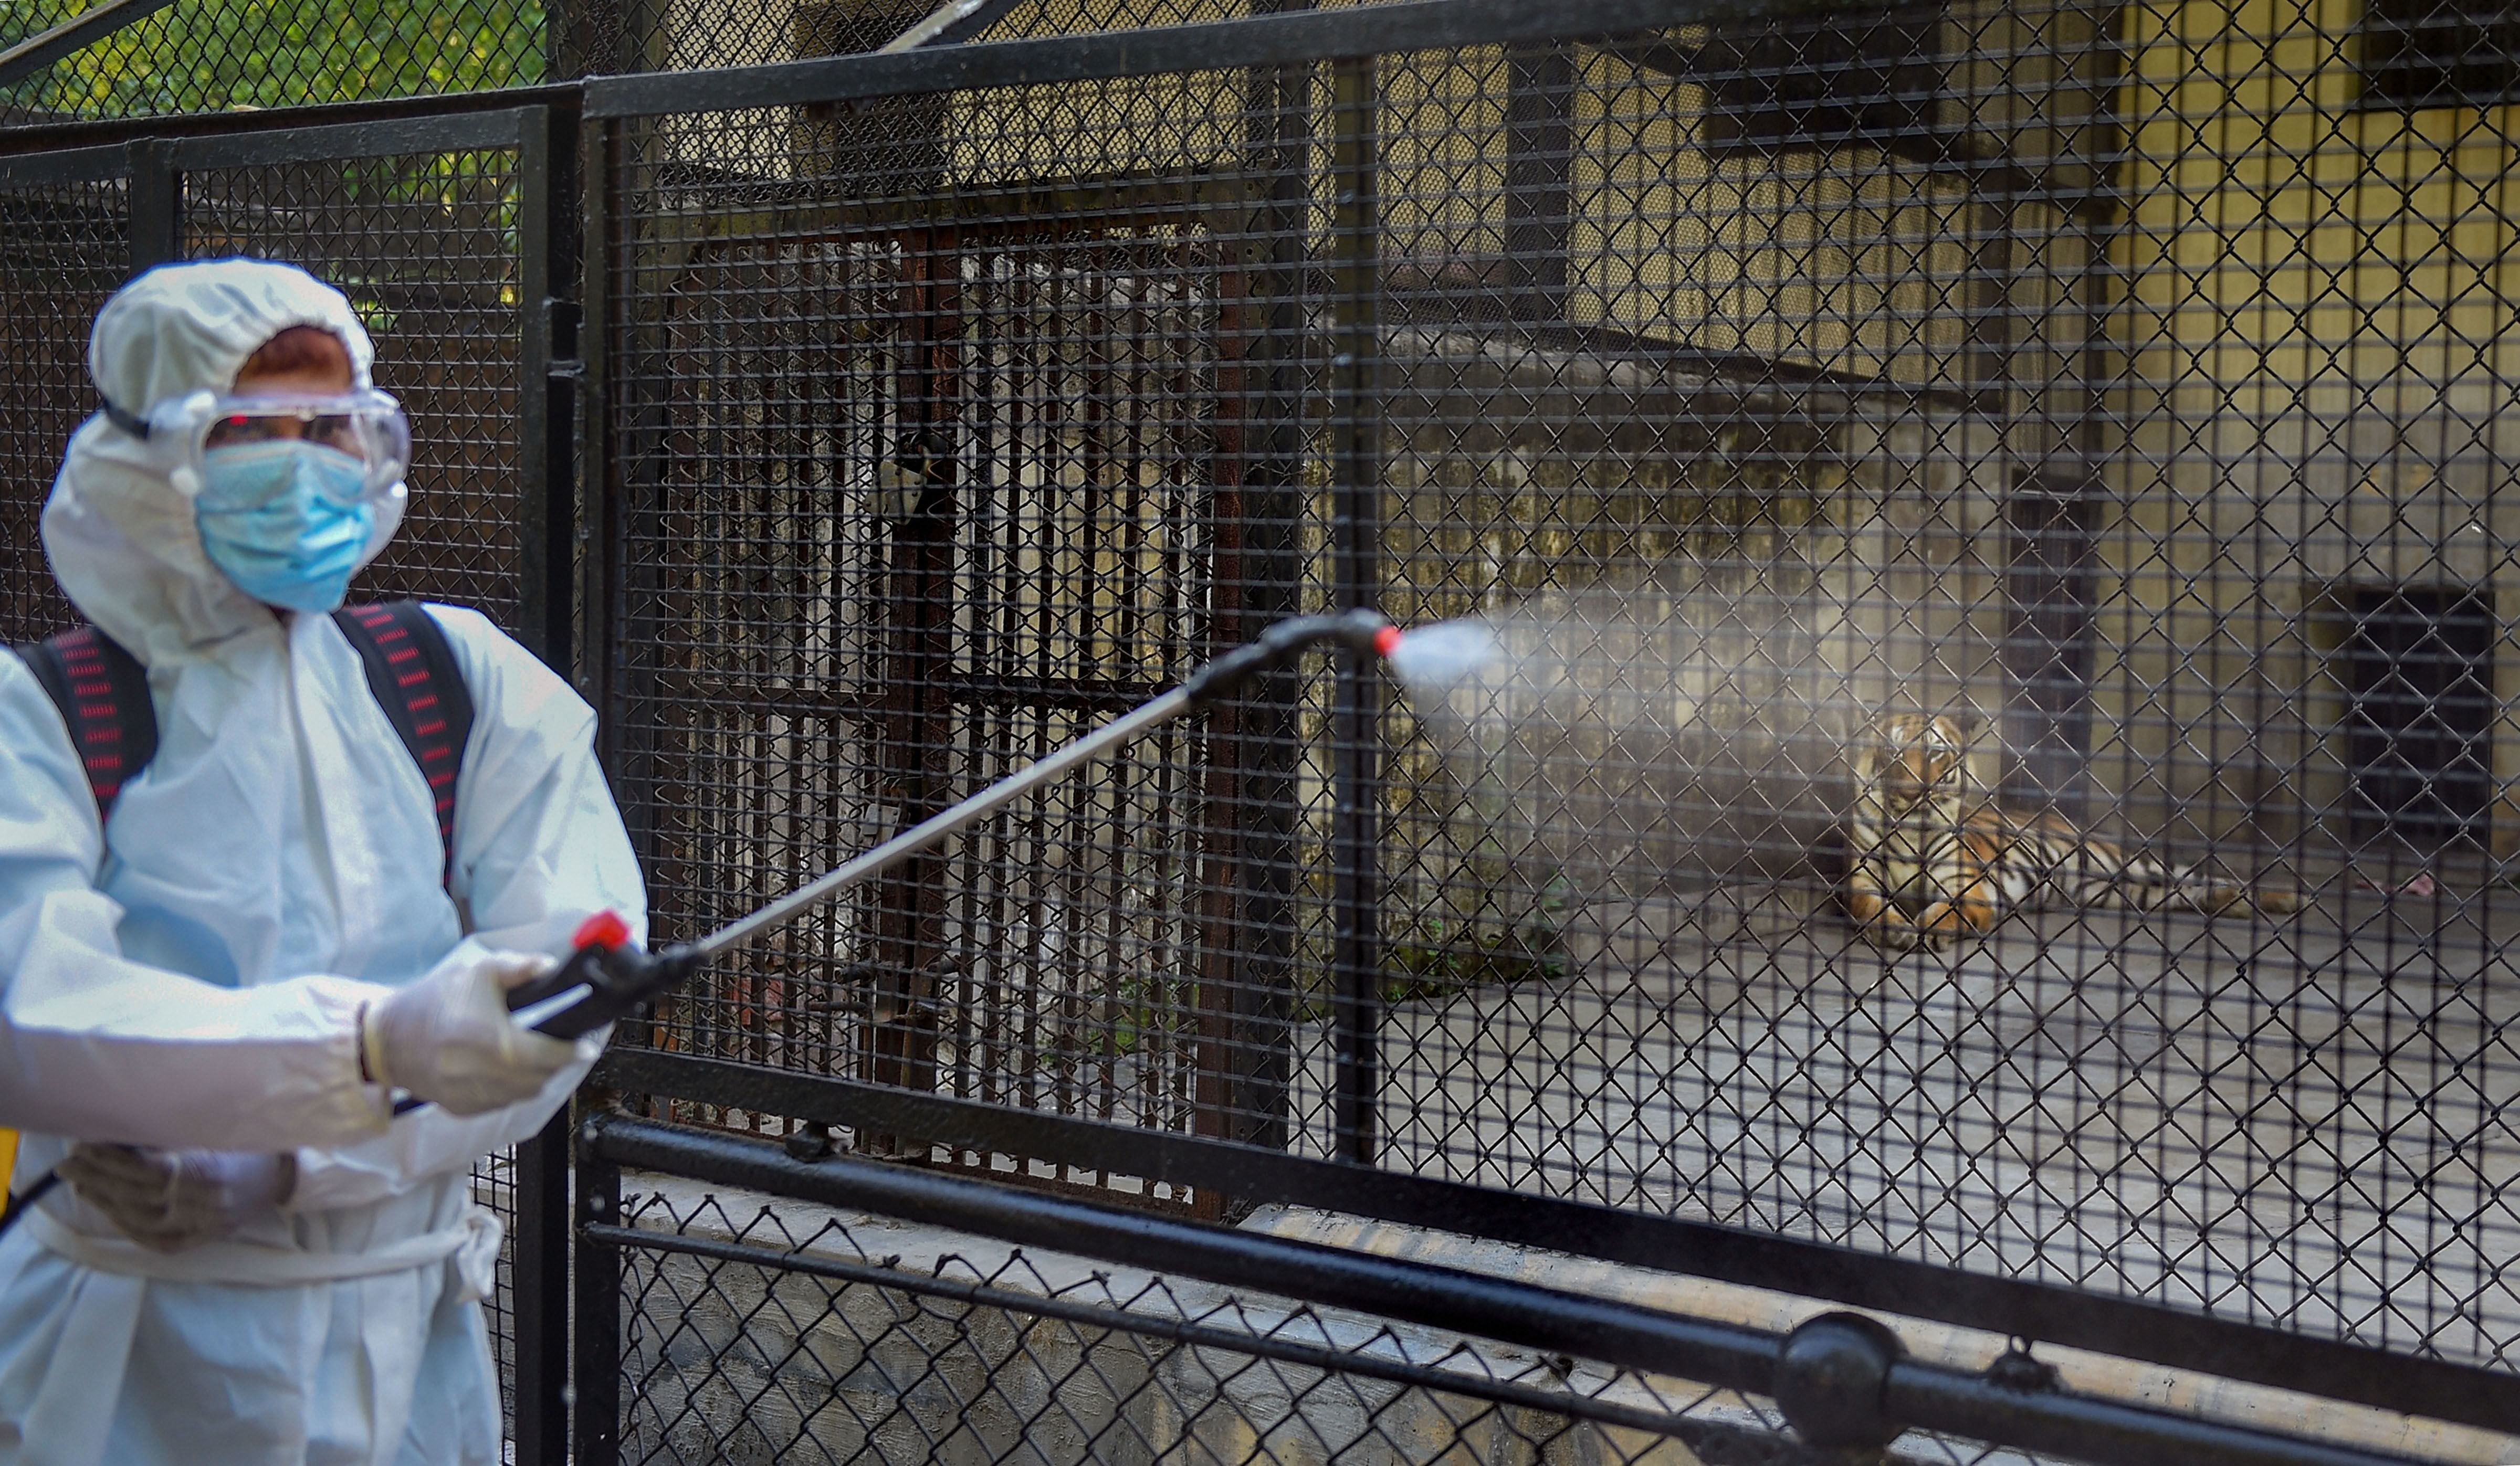 Kolkata: A worker sanitises a tiger's enclosure at the Alipore zoo during the nationwide lockdown imposed in the wake of coronavirus pandemic, in Kolkata, Monday, April 6, 2020. A four-year-old female Malayan tiger at New York's Bronx Zoo has tested positive for the coronavirus, federal officials and the zoo said Sunday. (PTI Photo/Ashok Bhaumik) (PTI06-04-2020_000157A) (PTI)